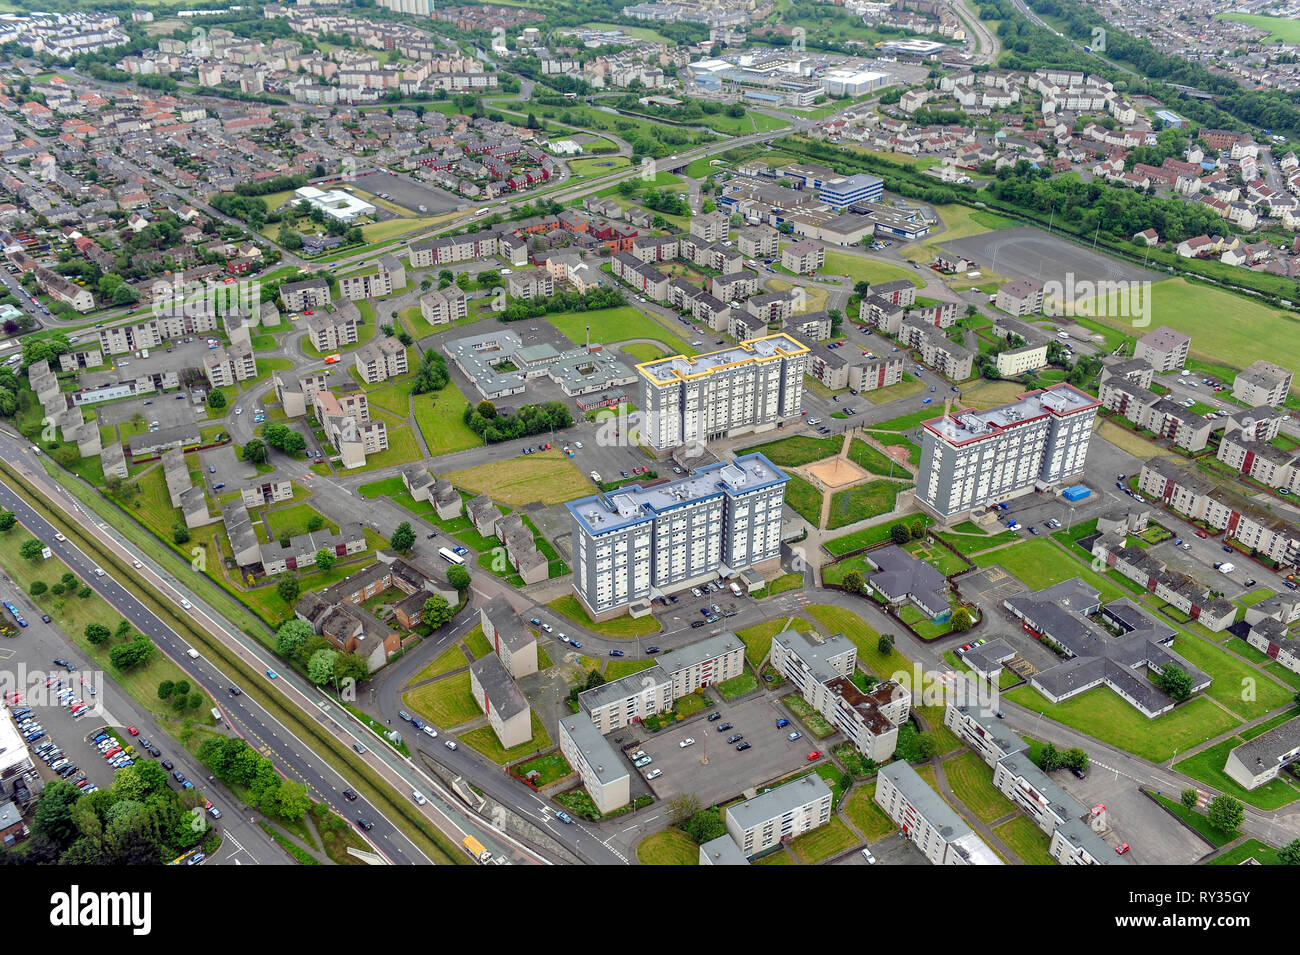 Aerial view of the Wester Hailes housing estate, south west edinburgh. - Stock Image